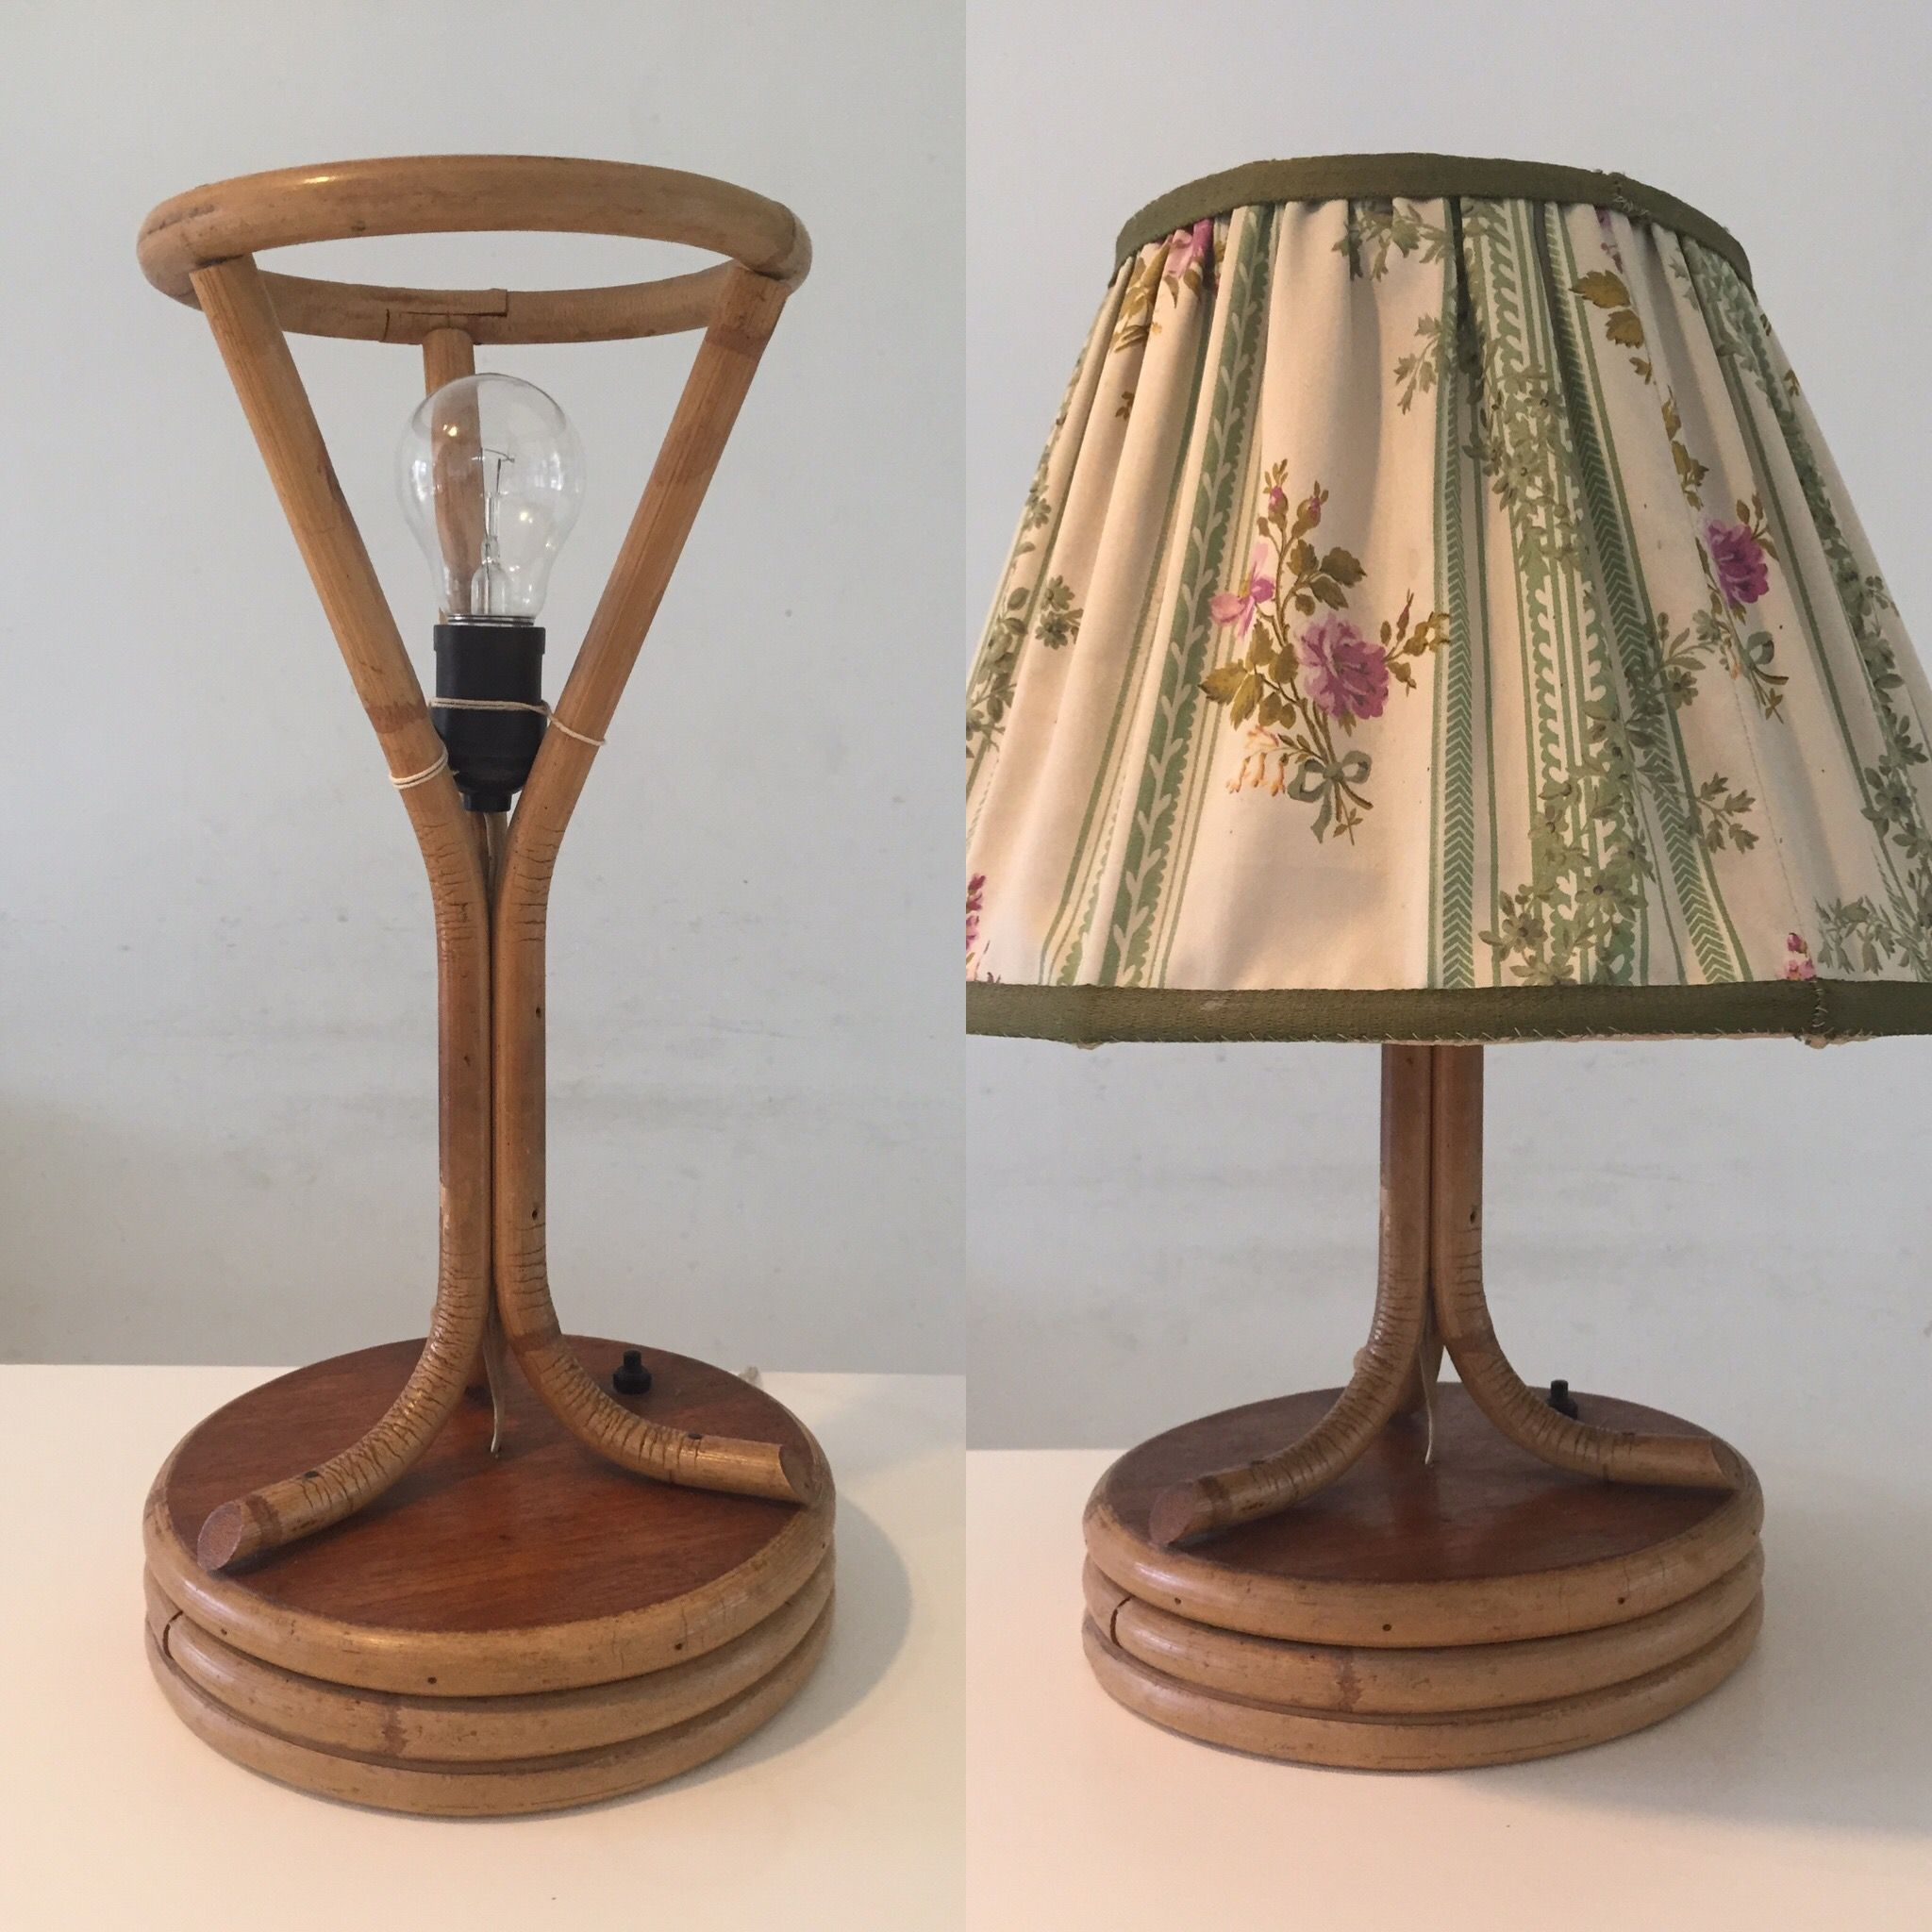 Beautiful Stylish Vintage Bamboo Table Lamp From The Fifties. Nice Design